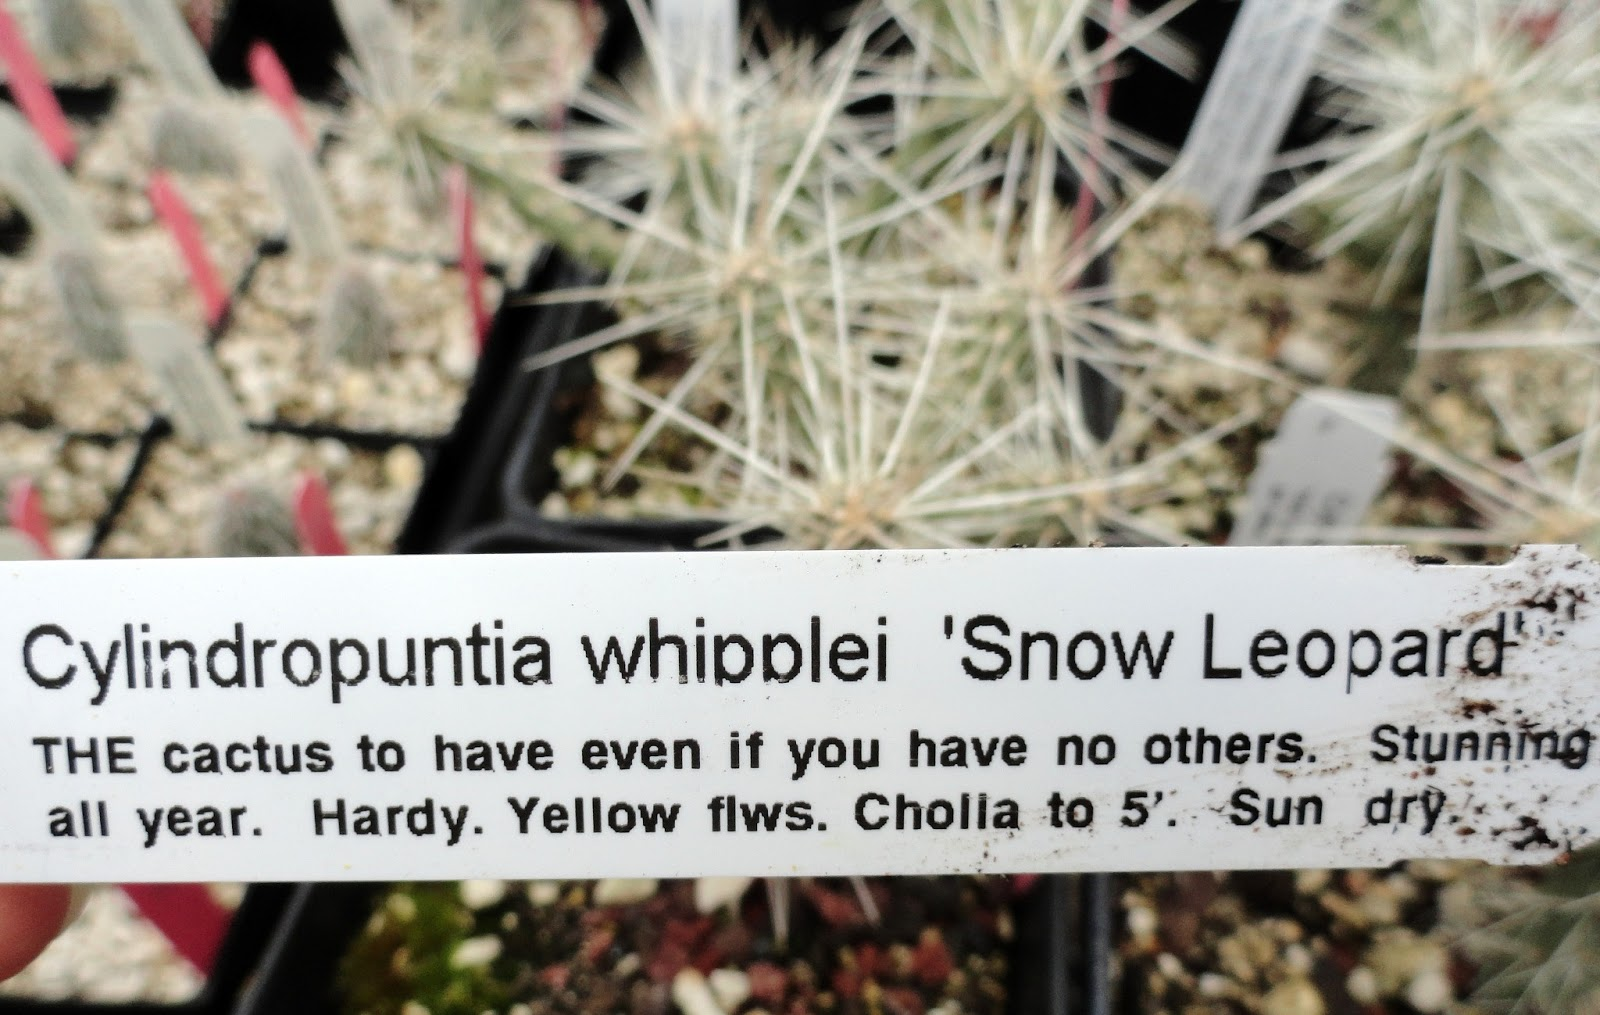 I Also Really Enjoyed Reading Their Plant Tags.